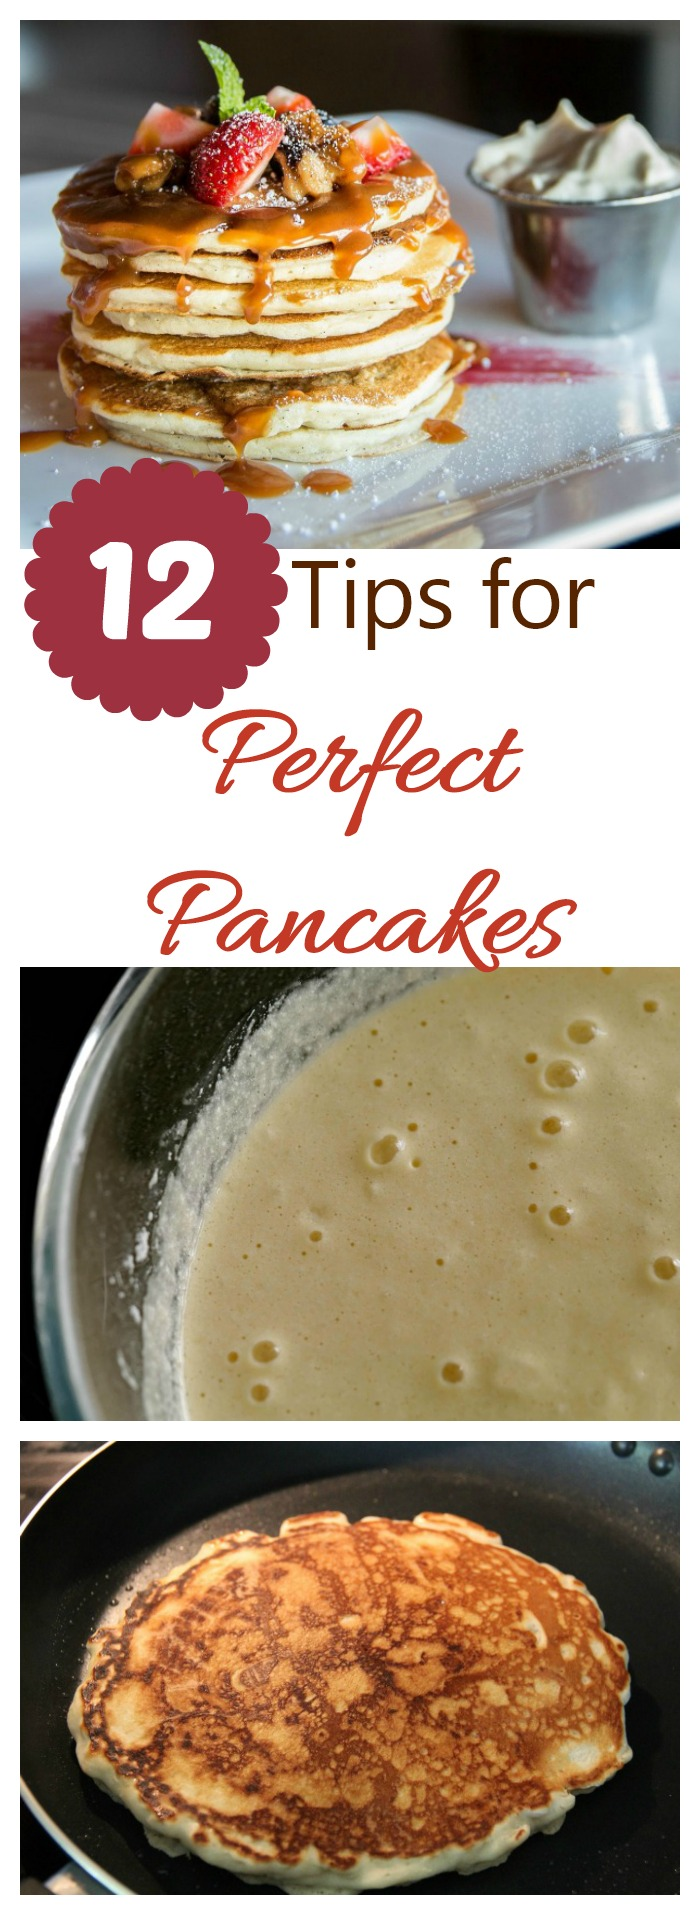 These 12 tips will have you making great pancakes every time - light fluffy and full of flavor!